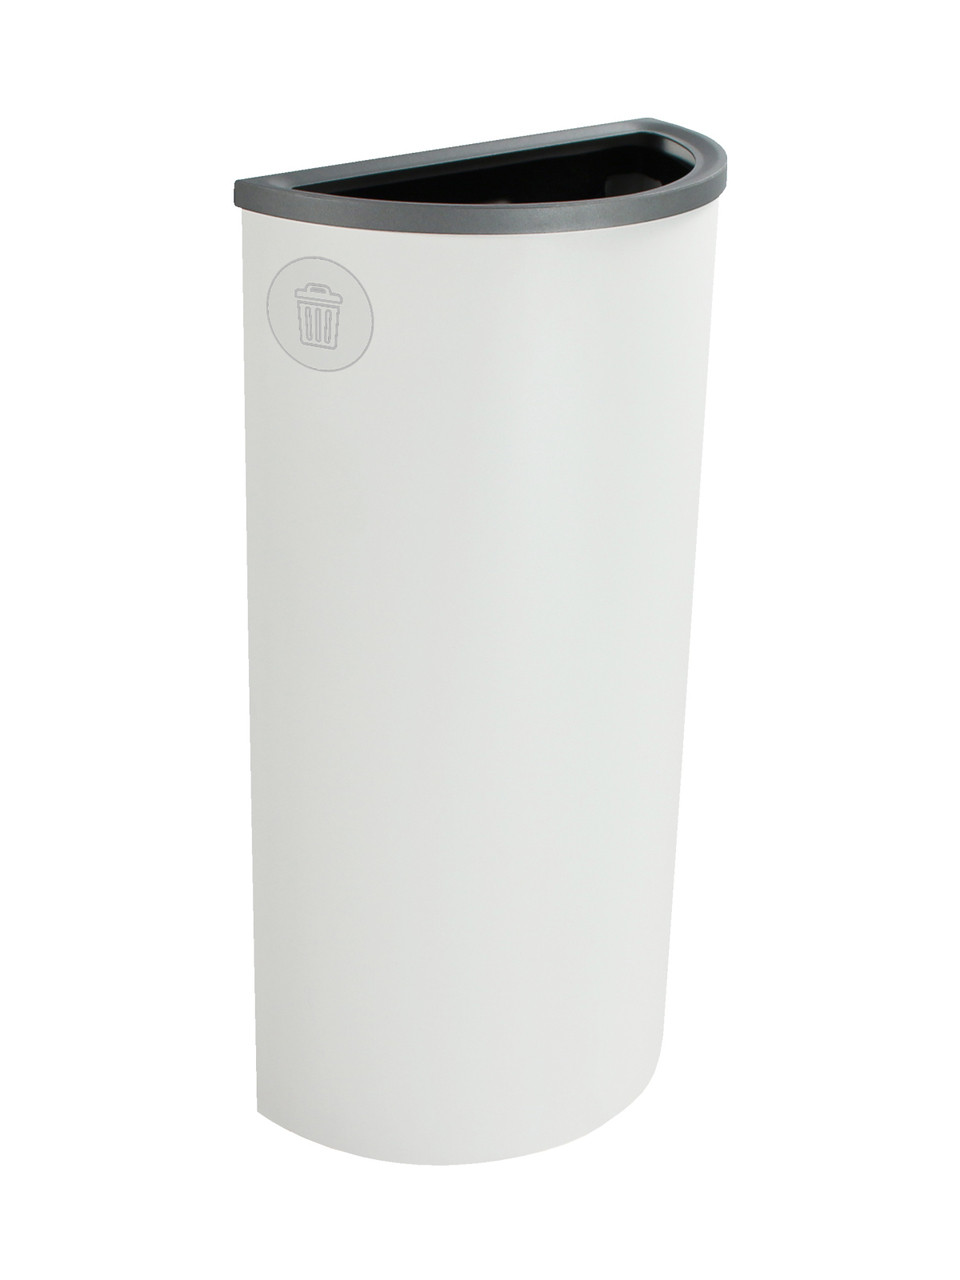 8 Gallon Steel Spectrum Half Round Trash Can White 8107032-4